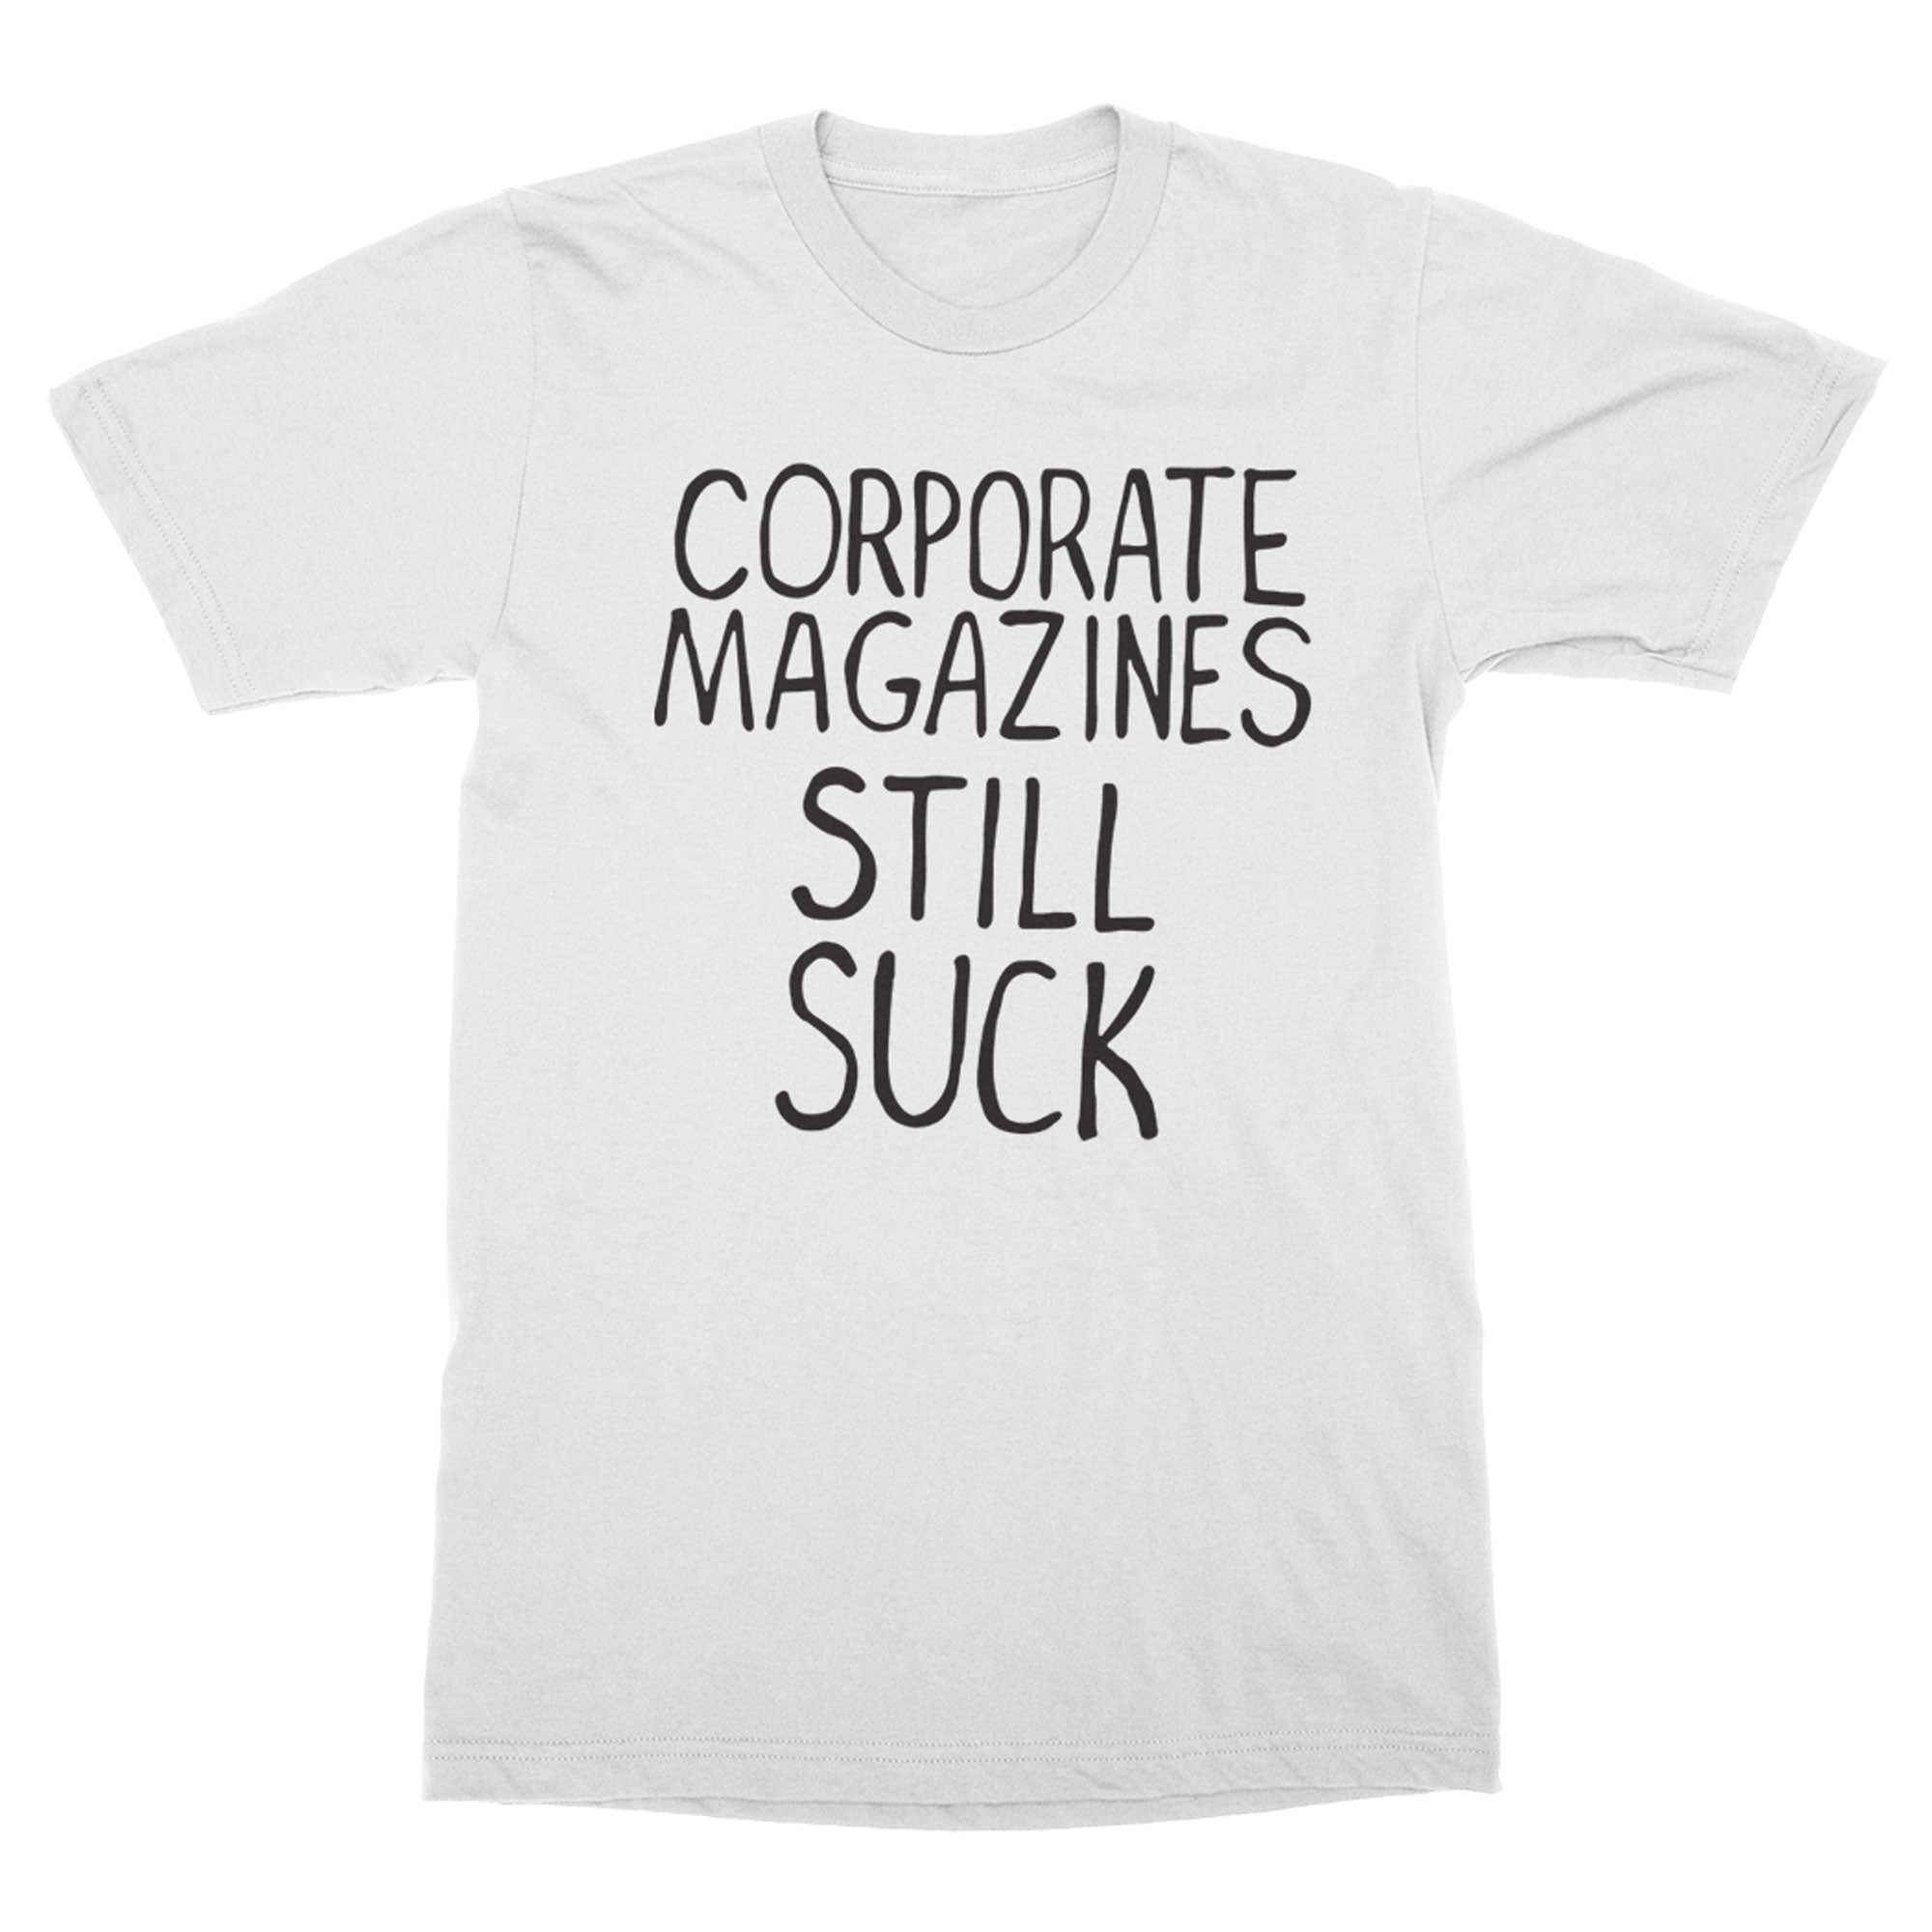 Corporate Magazines Still Suck 90s Grunge Vintage Shirt-T-Shirts-Shirtasaurus-Basic-S-White-Shirtasaurus